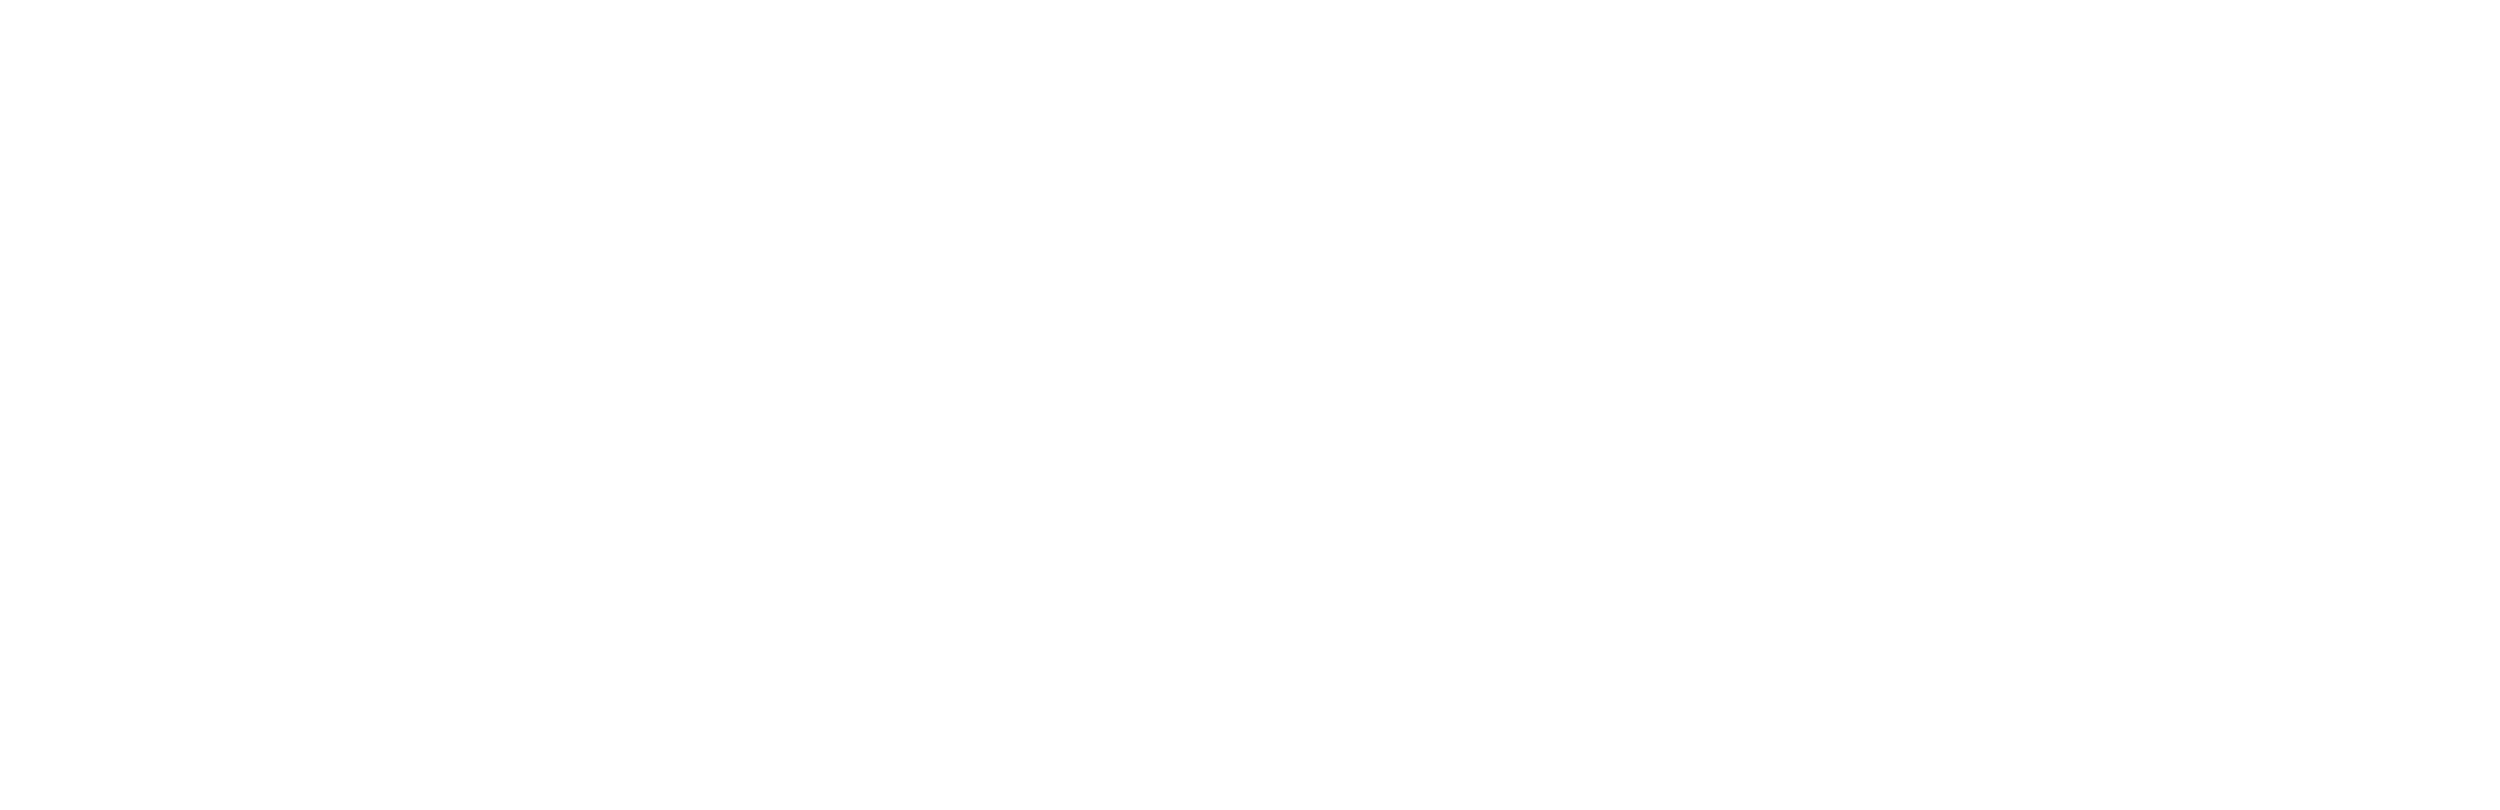 ETHOS_Logo_name_white - Copy.png